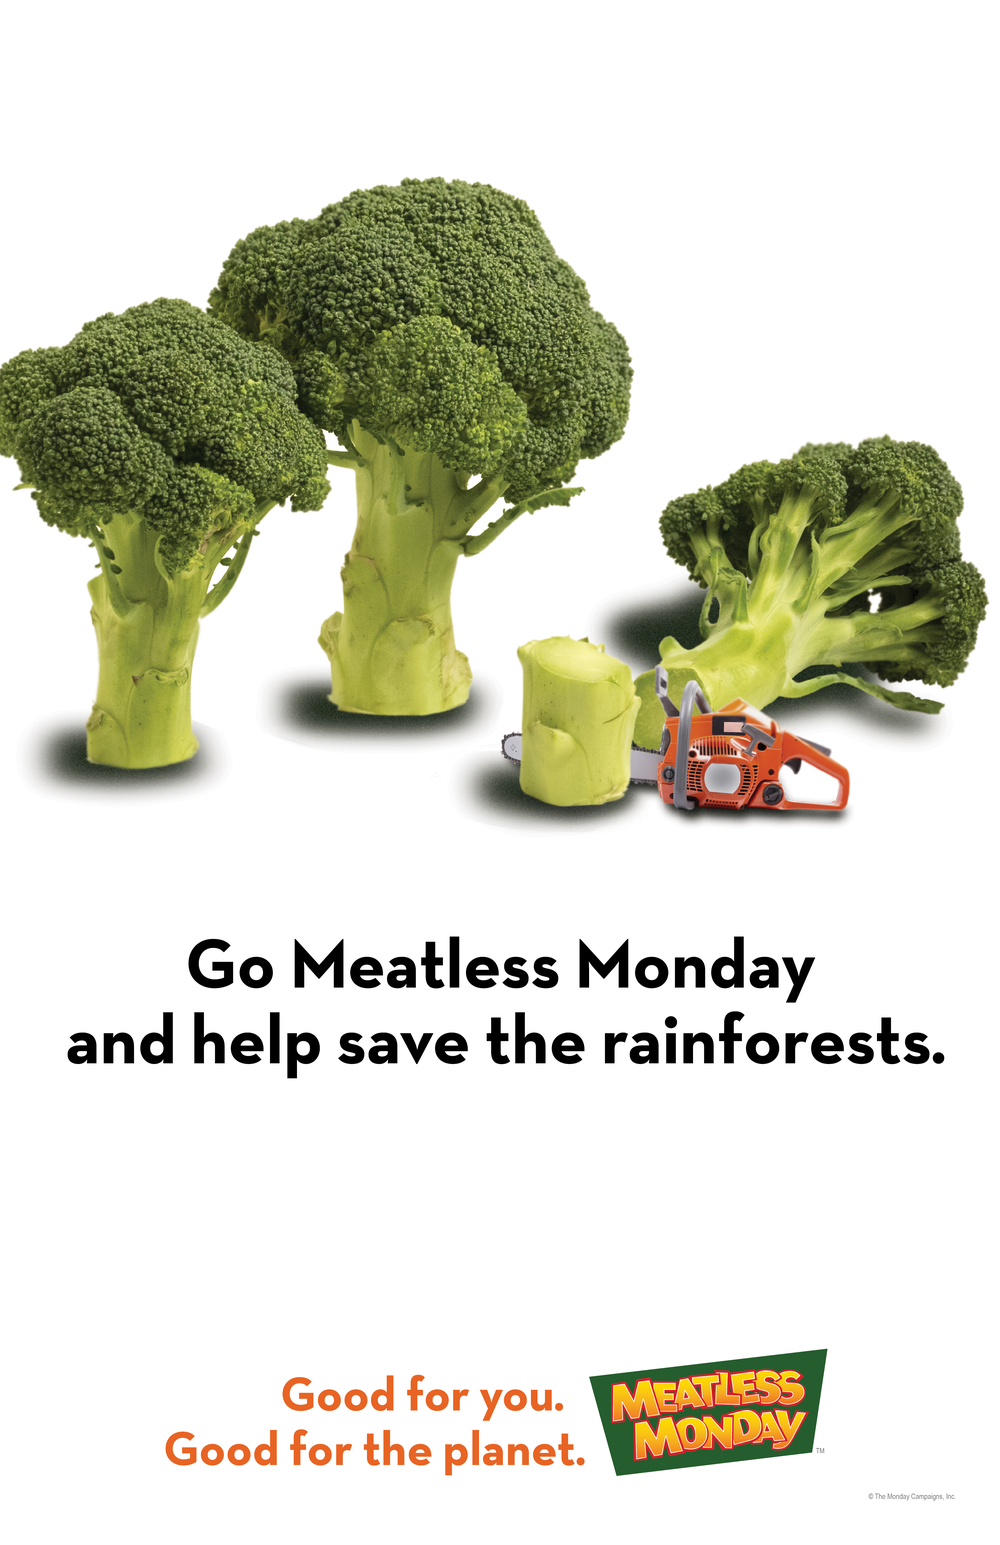 MeatlessMonday-poster-deforestation.png